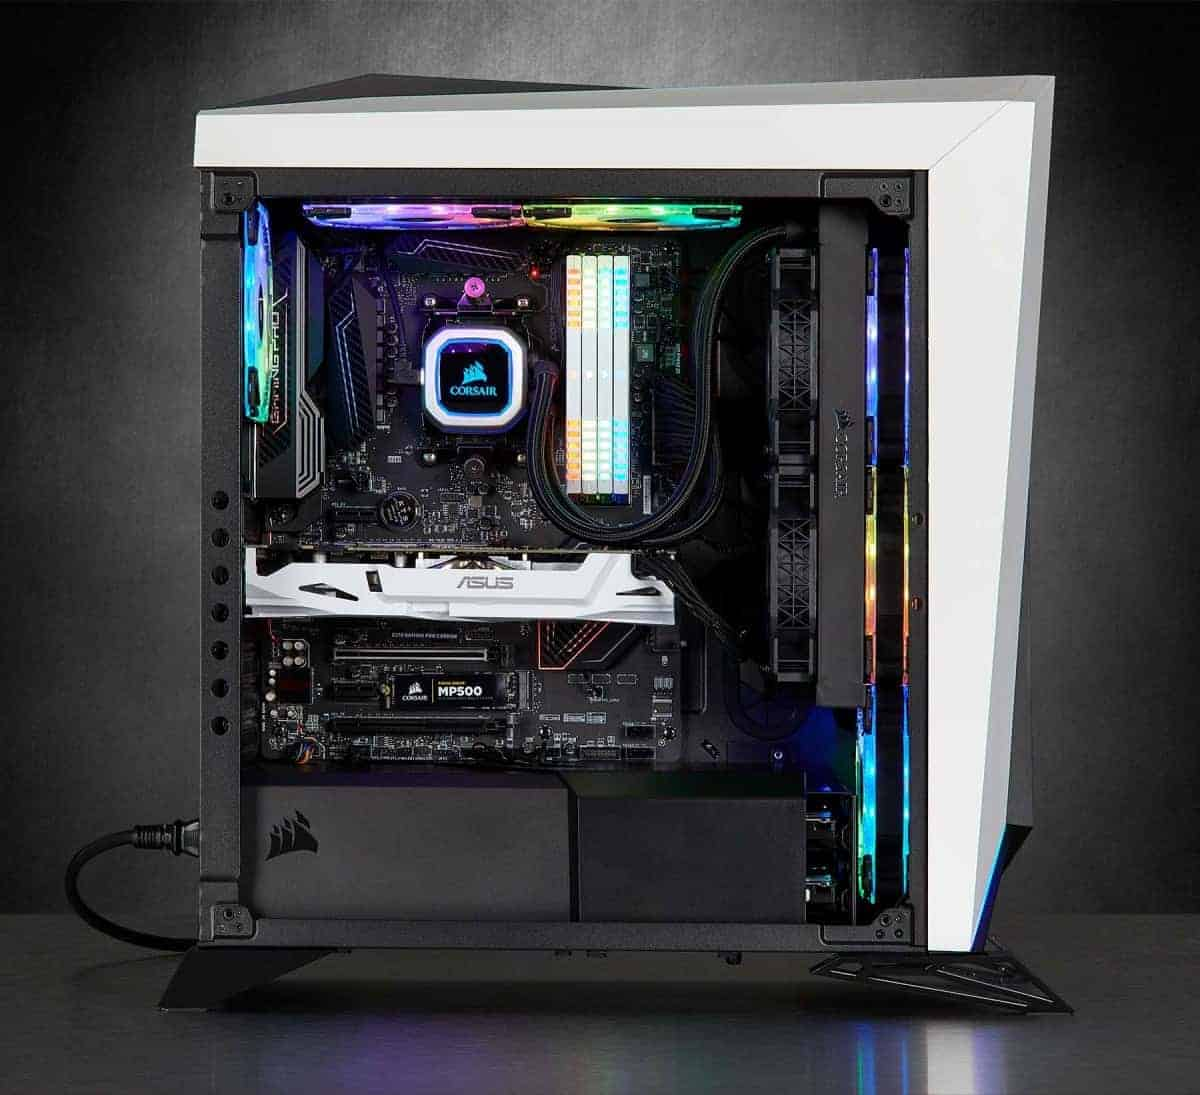 CORSAIR Launches New SPEC-OMEGA RGB - The Streaming Blog